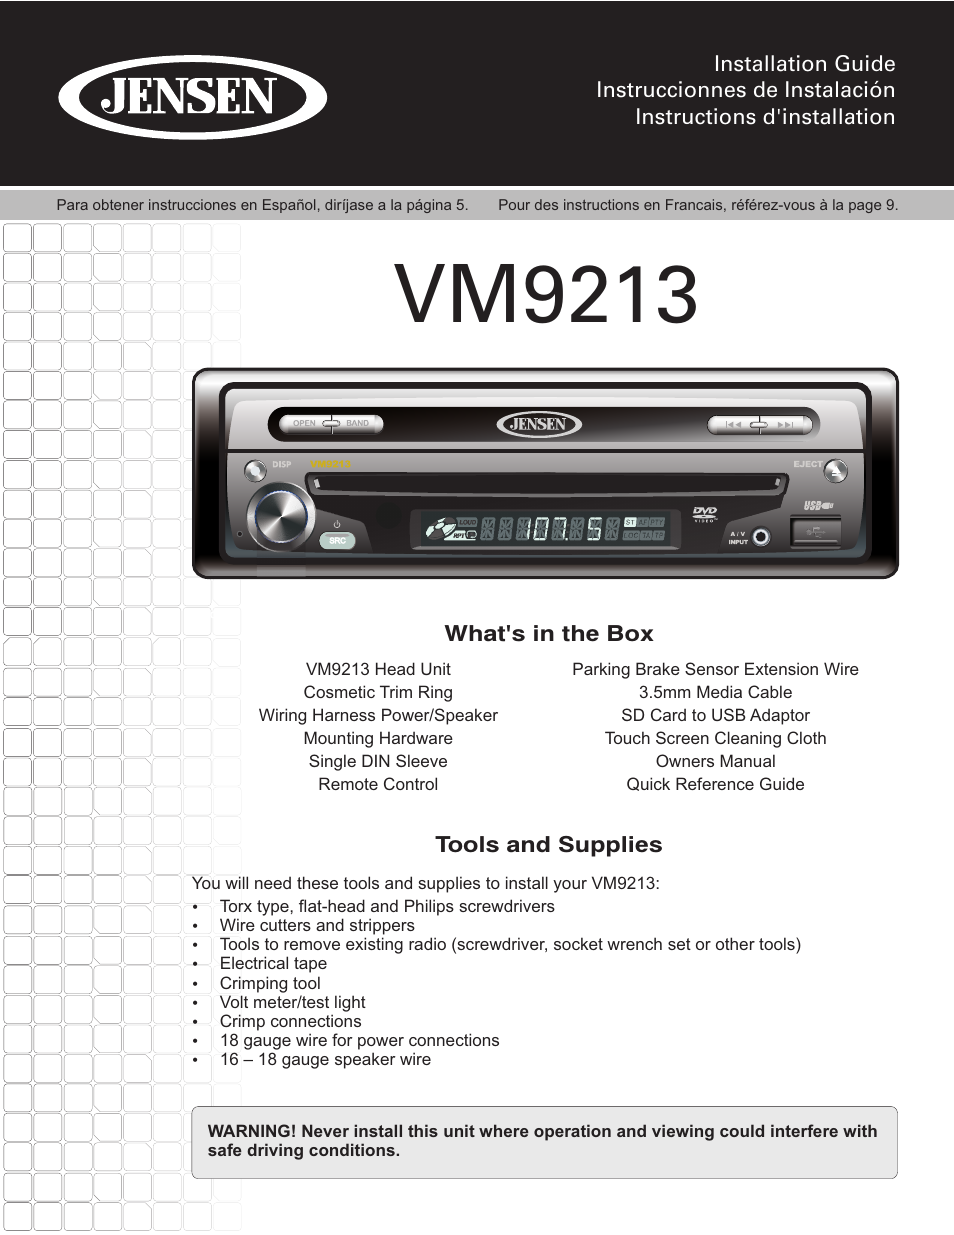 jensen vm9213 page1 jensen vm9213 user manual 12 pages Ford Electrical Wiring Diagrams at webbmarketing.co